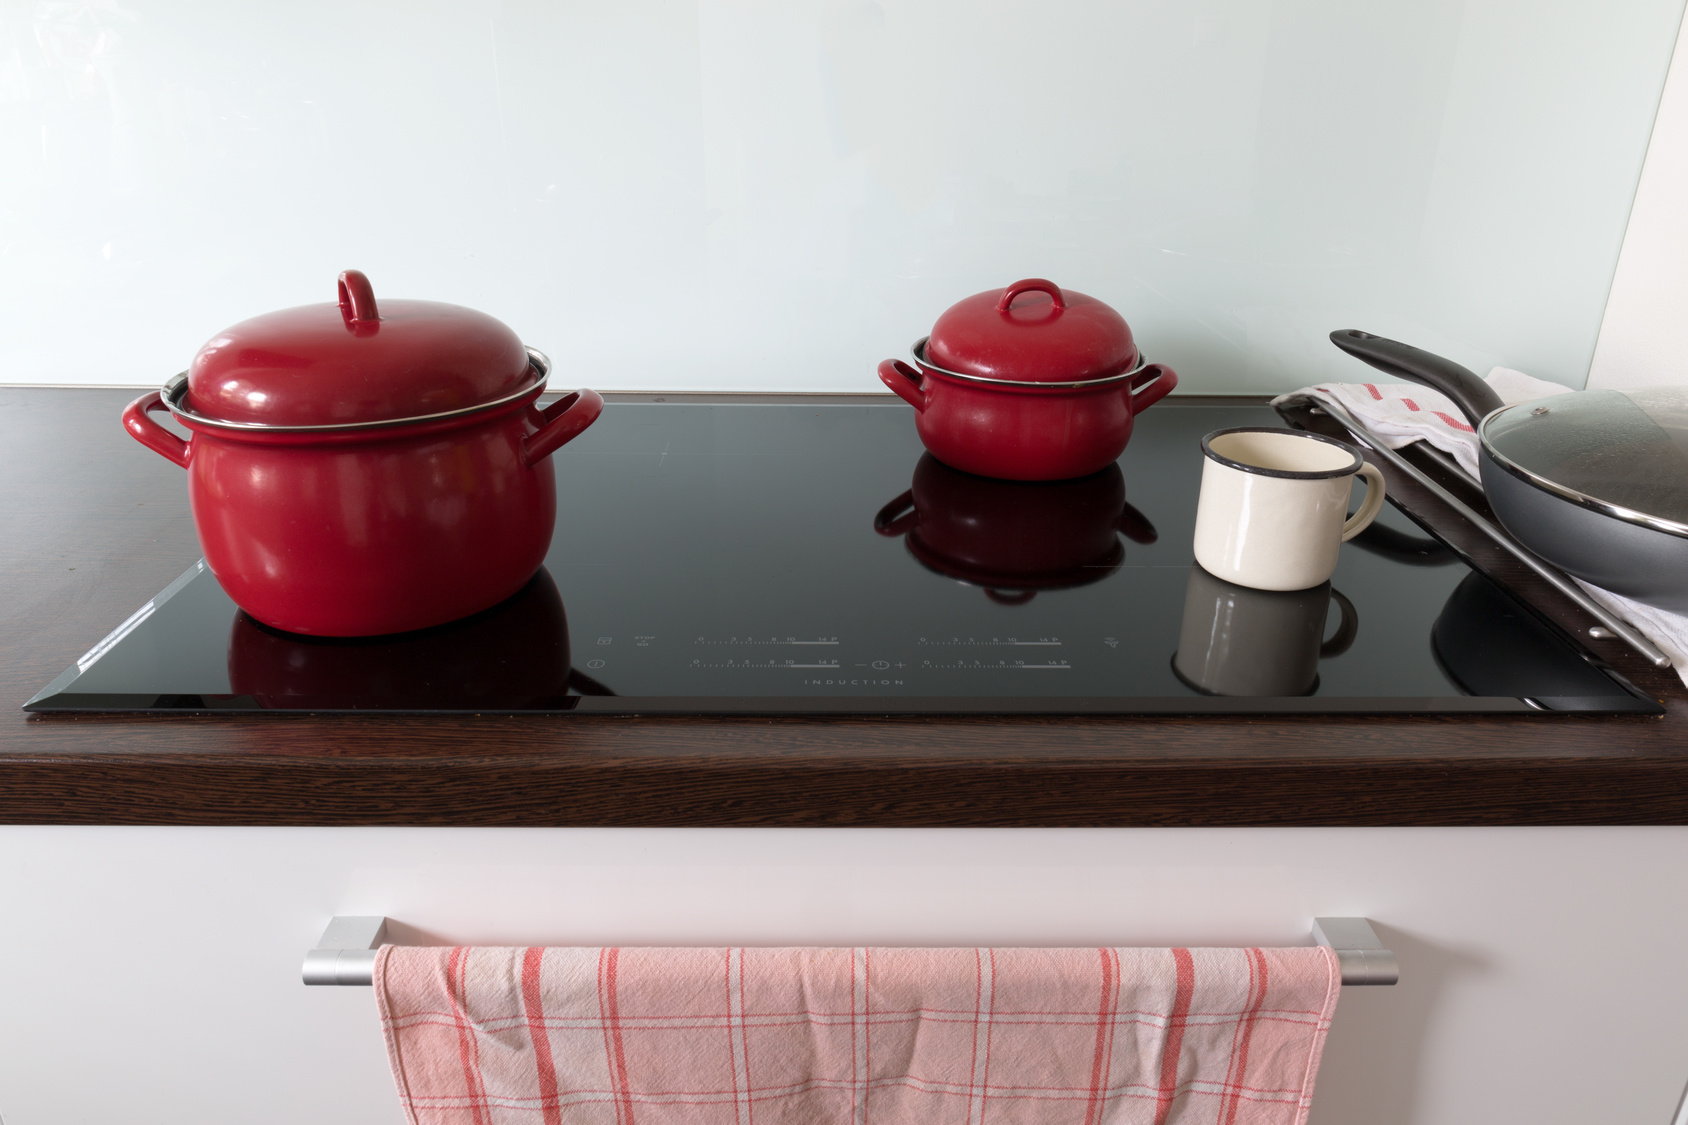 Cooking in red pots on induction hob